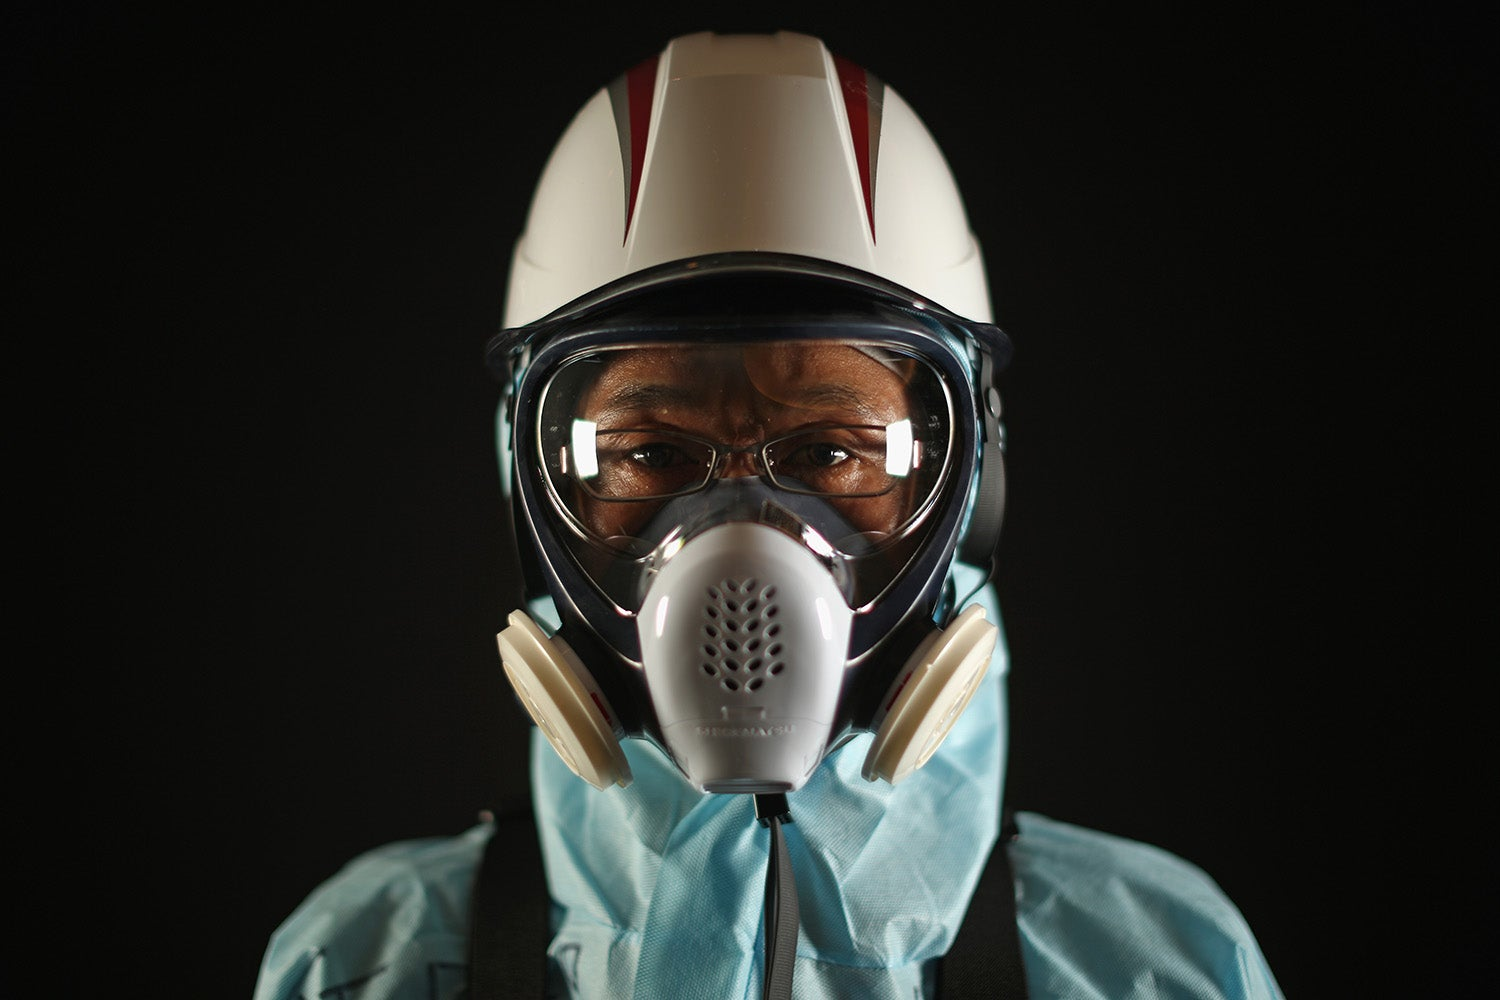 Fukushima Workers Don Their Protective Gear in These Eerie Portraits From the Exclusion Zone